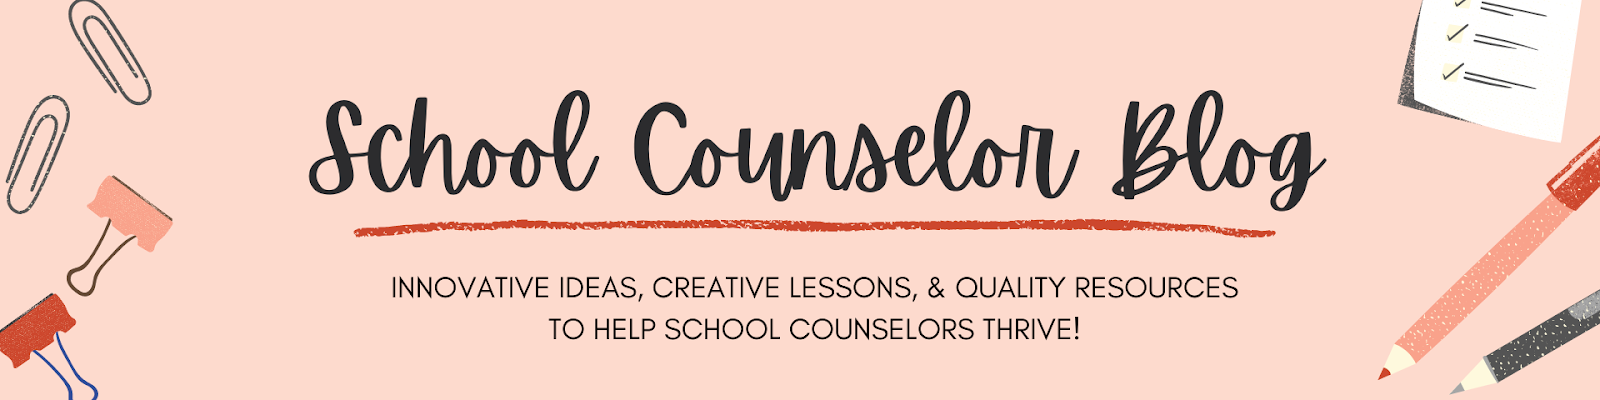 School Counselor Blog